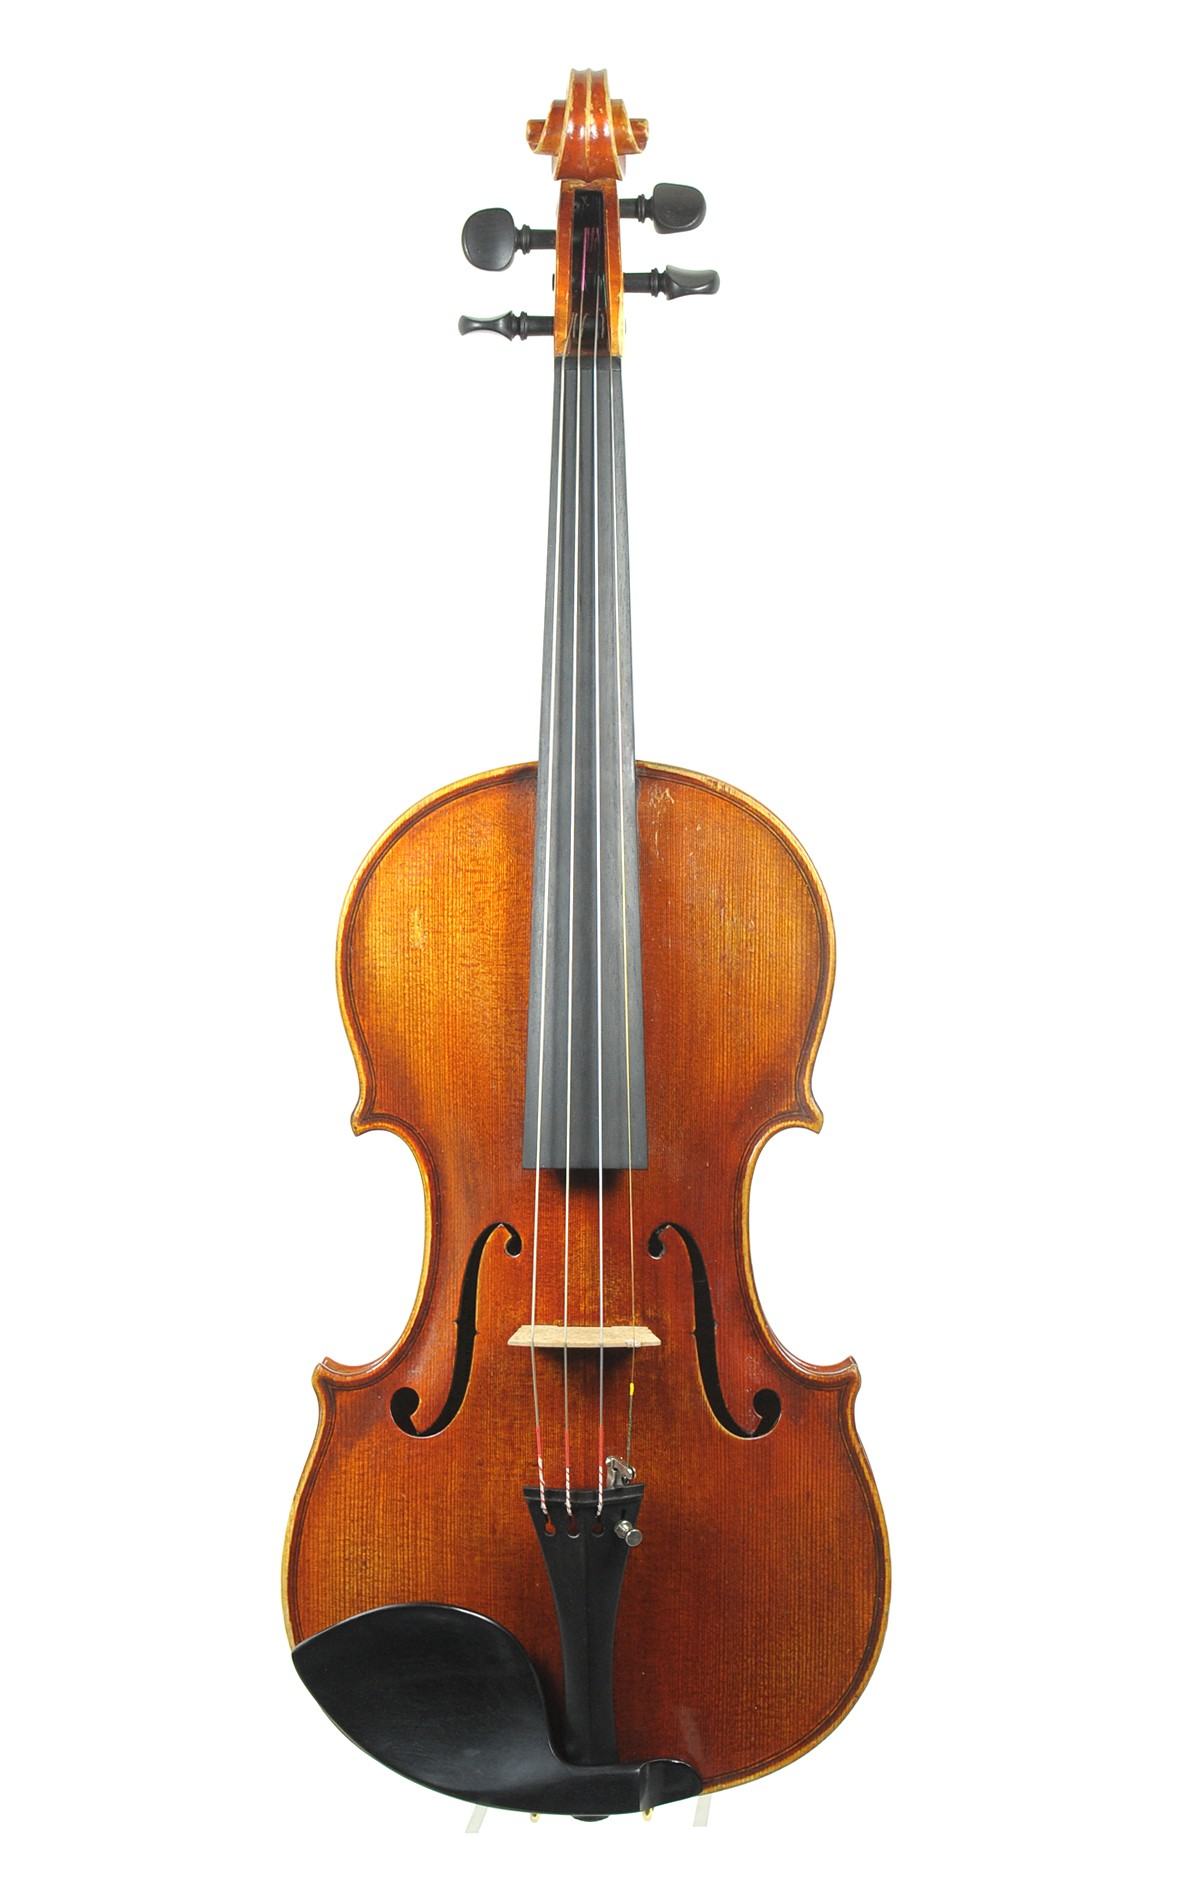 Master violin from Bubenreuth made by Bernd Dimbarth, violin maker. Spruce table